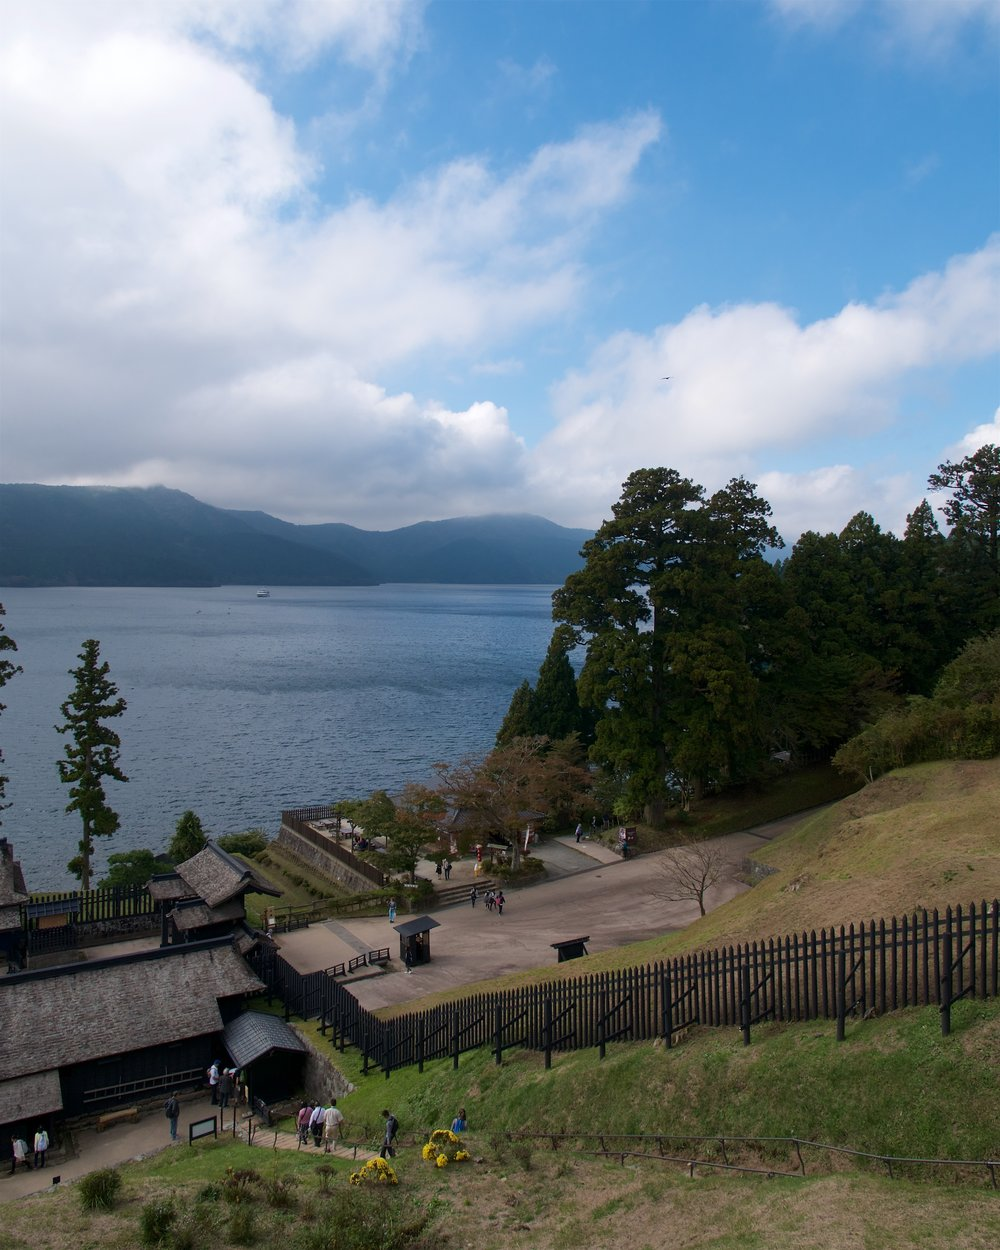 View from the Hakone Checkpoint lookout